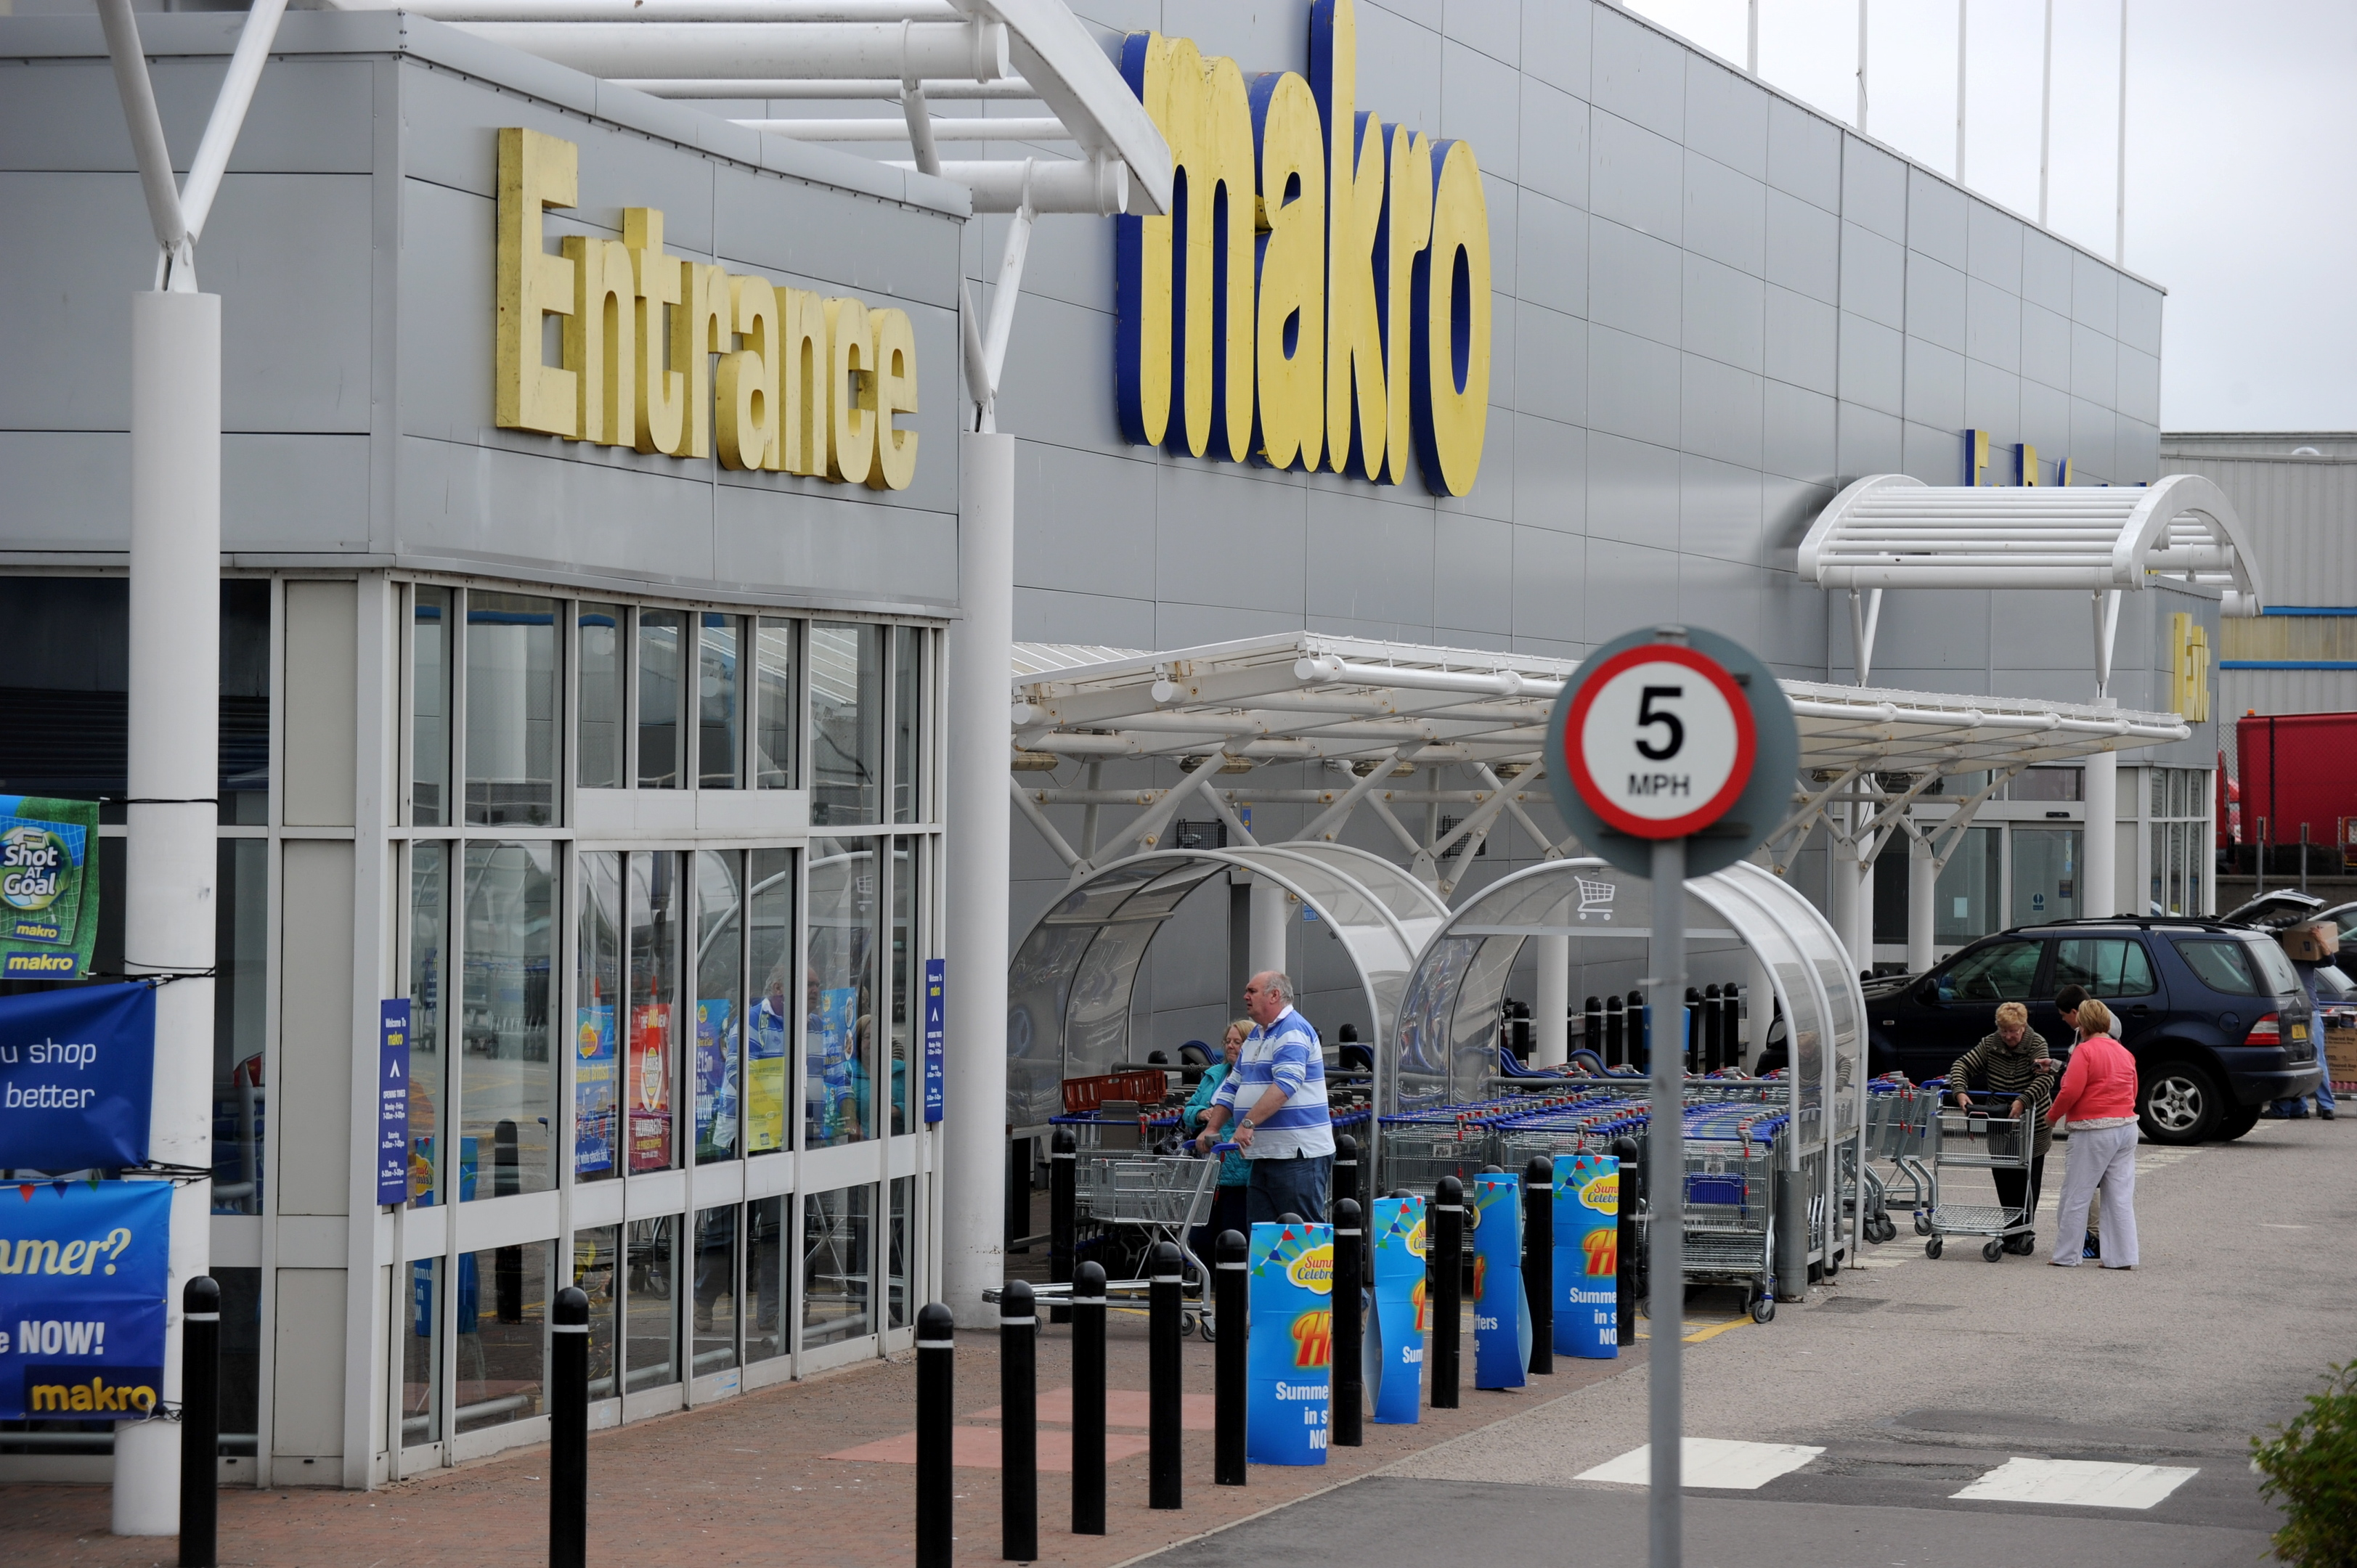 The supermarket would be created at the site of the Makro store in Nigg.